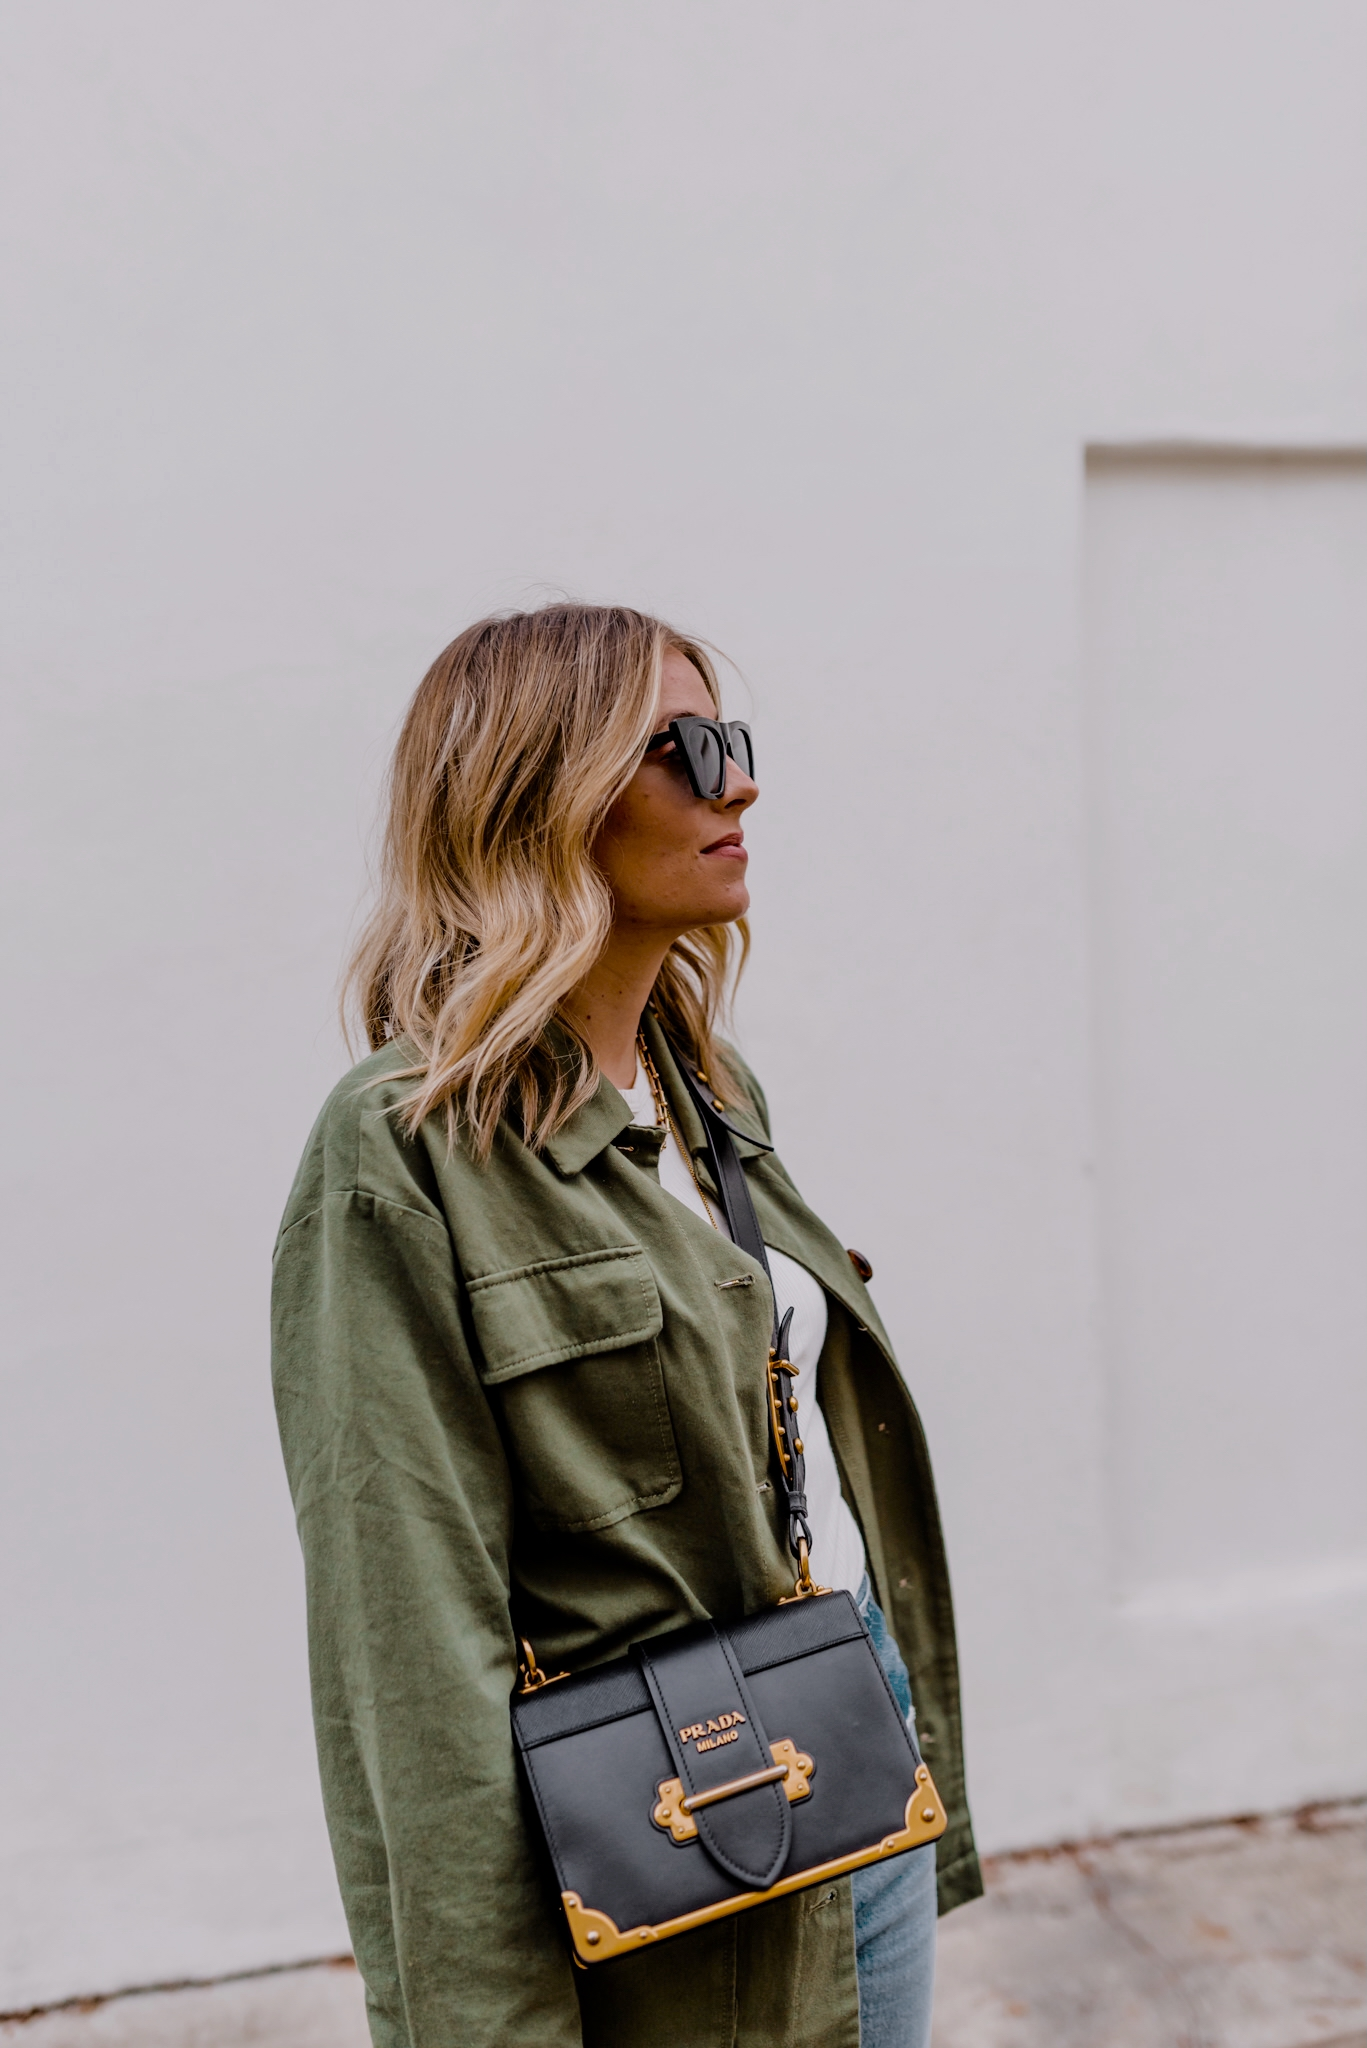 latest amazon buys |Amazon Buys by popular San Diego life and style blog, Navy Grace: image of a woman wearing a green utility shirt, white t-shirt, jeans, and a Prada purse.